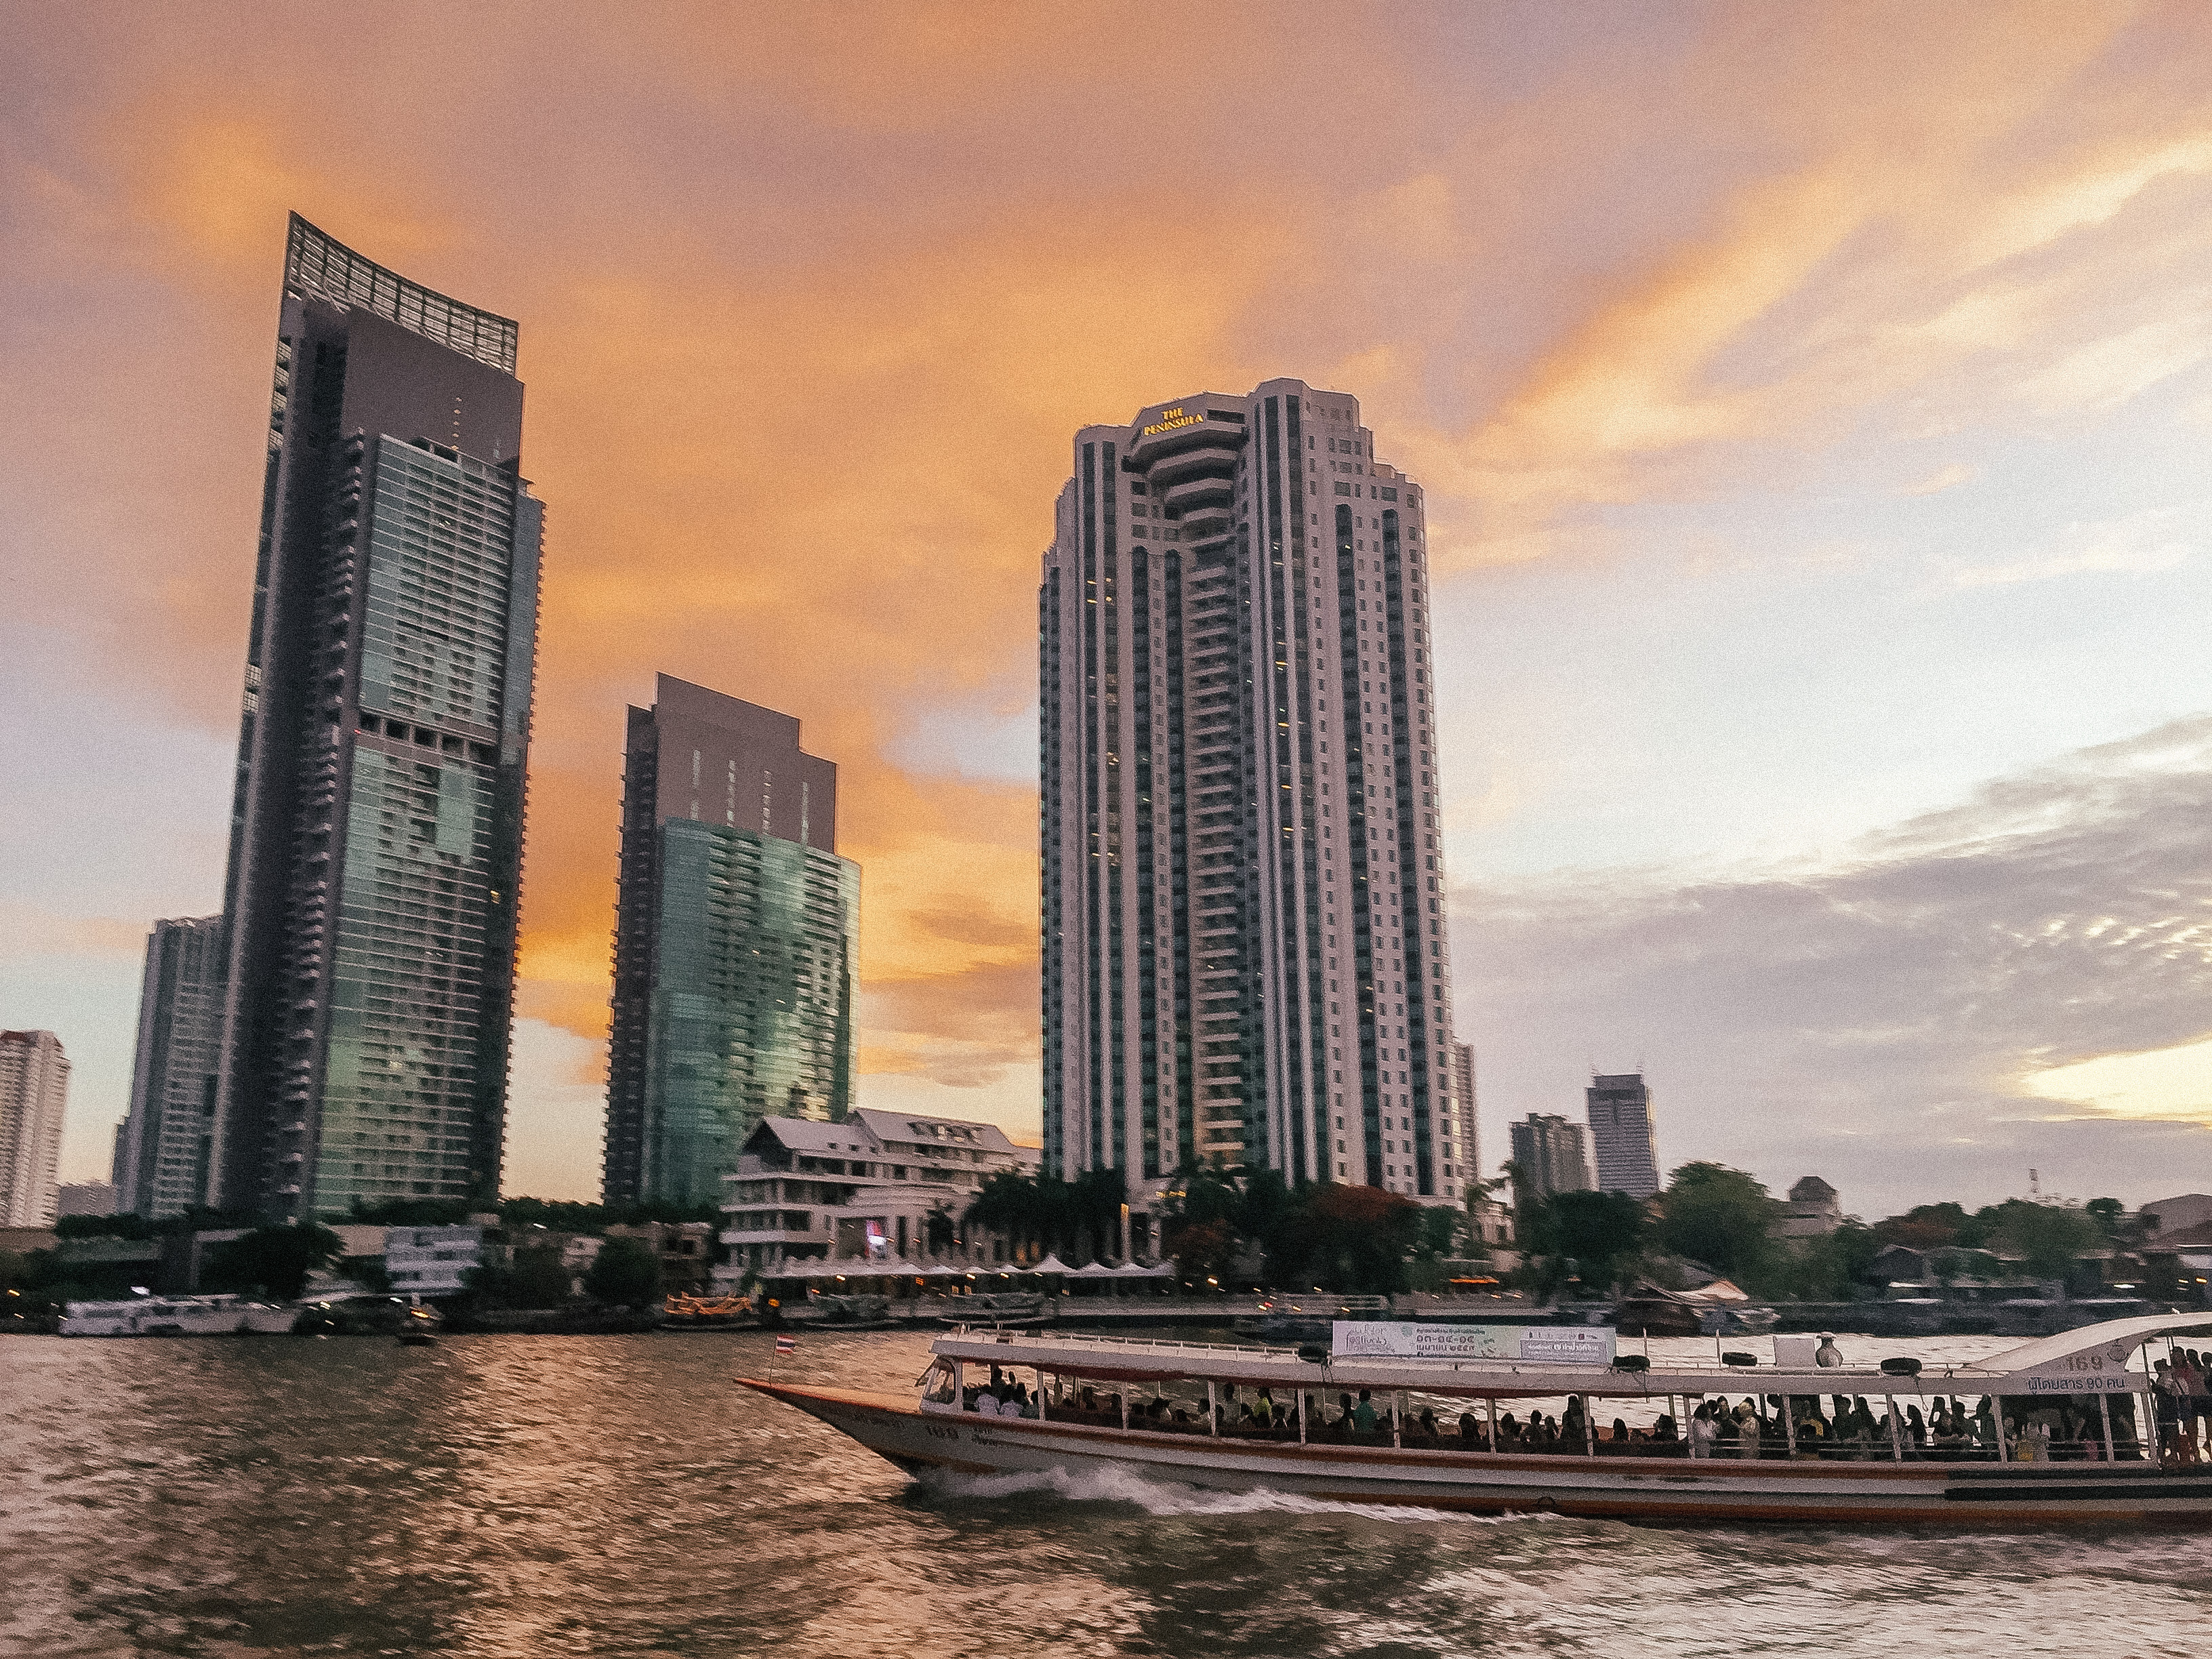 Drinks at the Mandarin Oriental - 48 hours in Bangkok guide